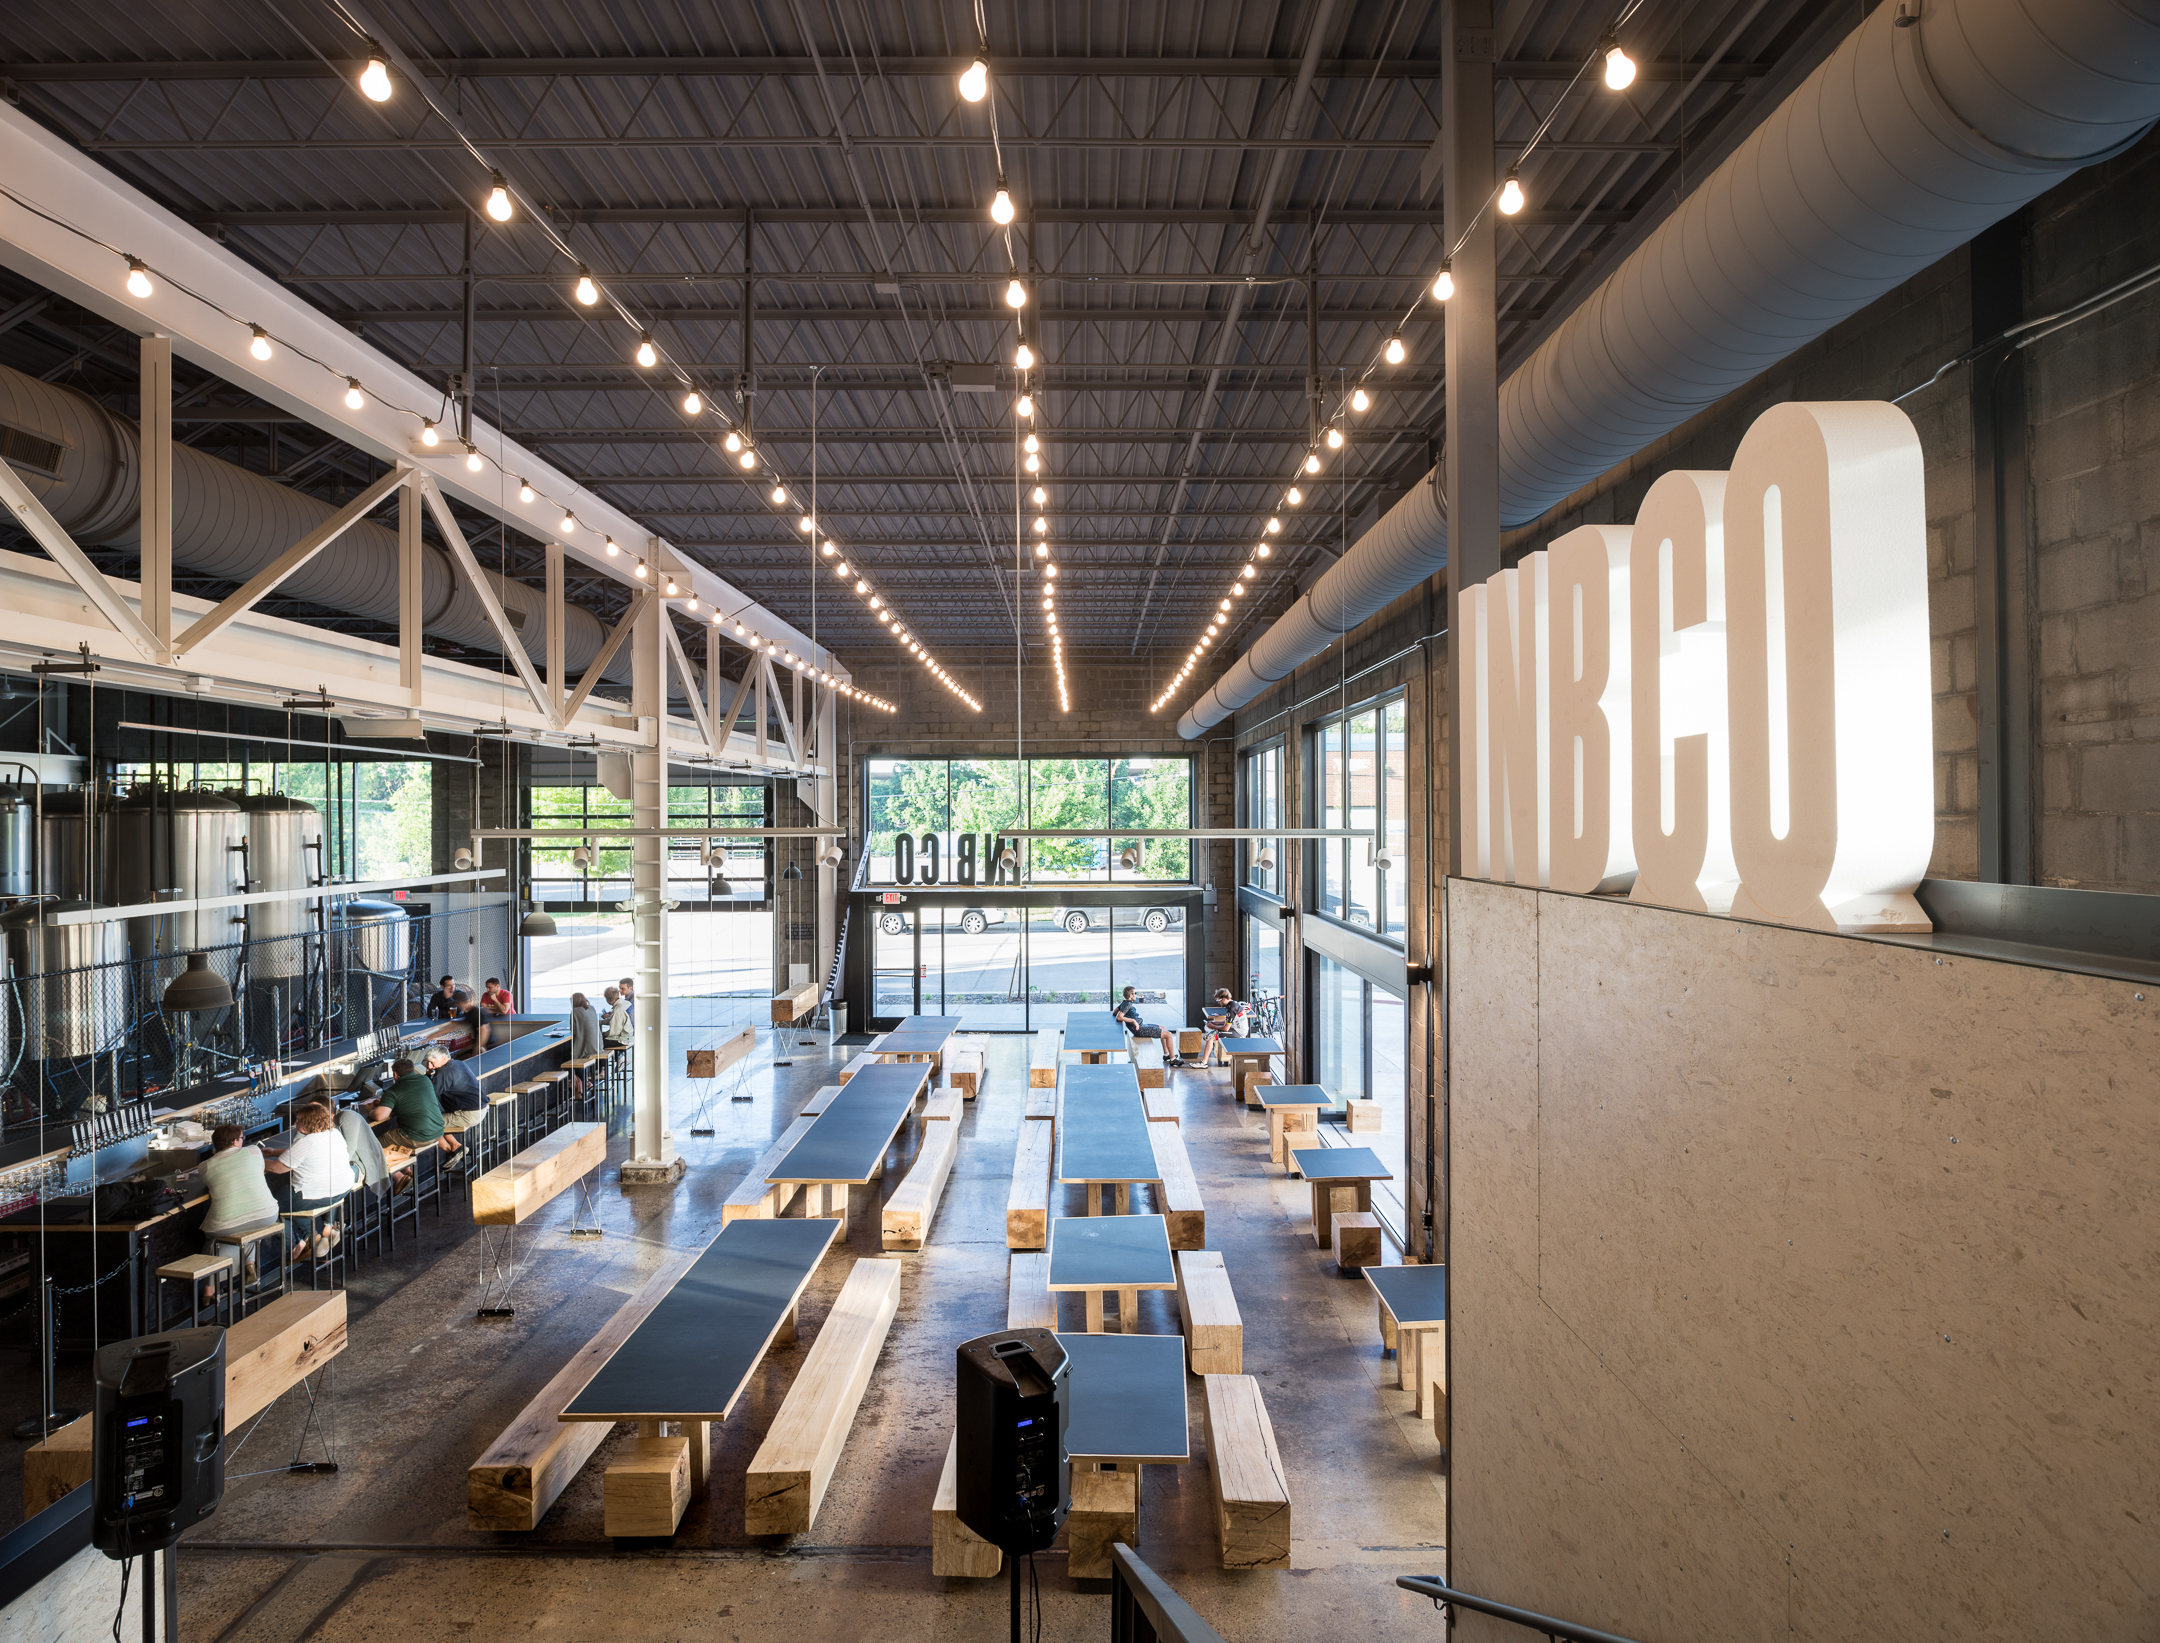 Modern brewery remodel of industrial space in Minneapolis by Christian Dean Architecture.